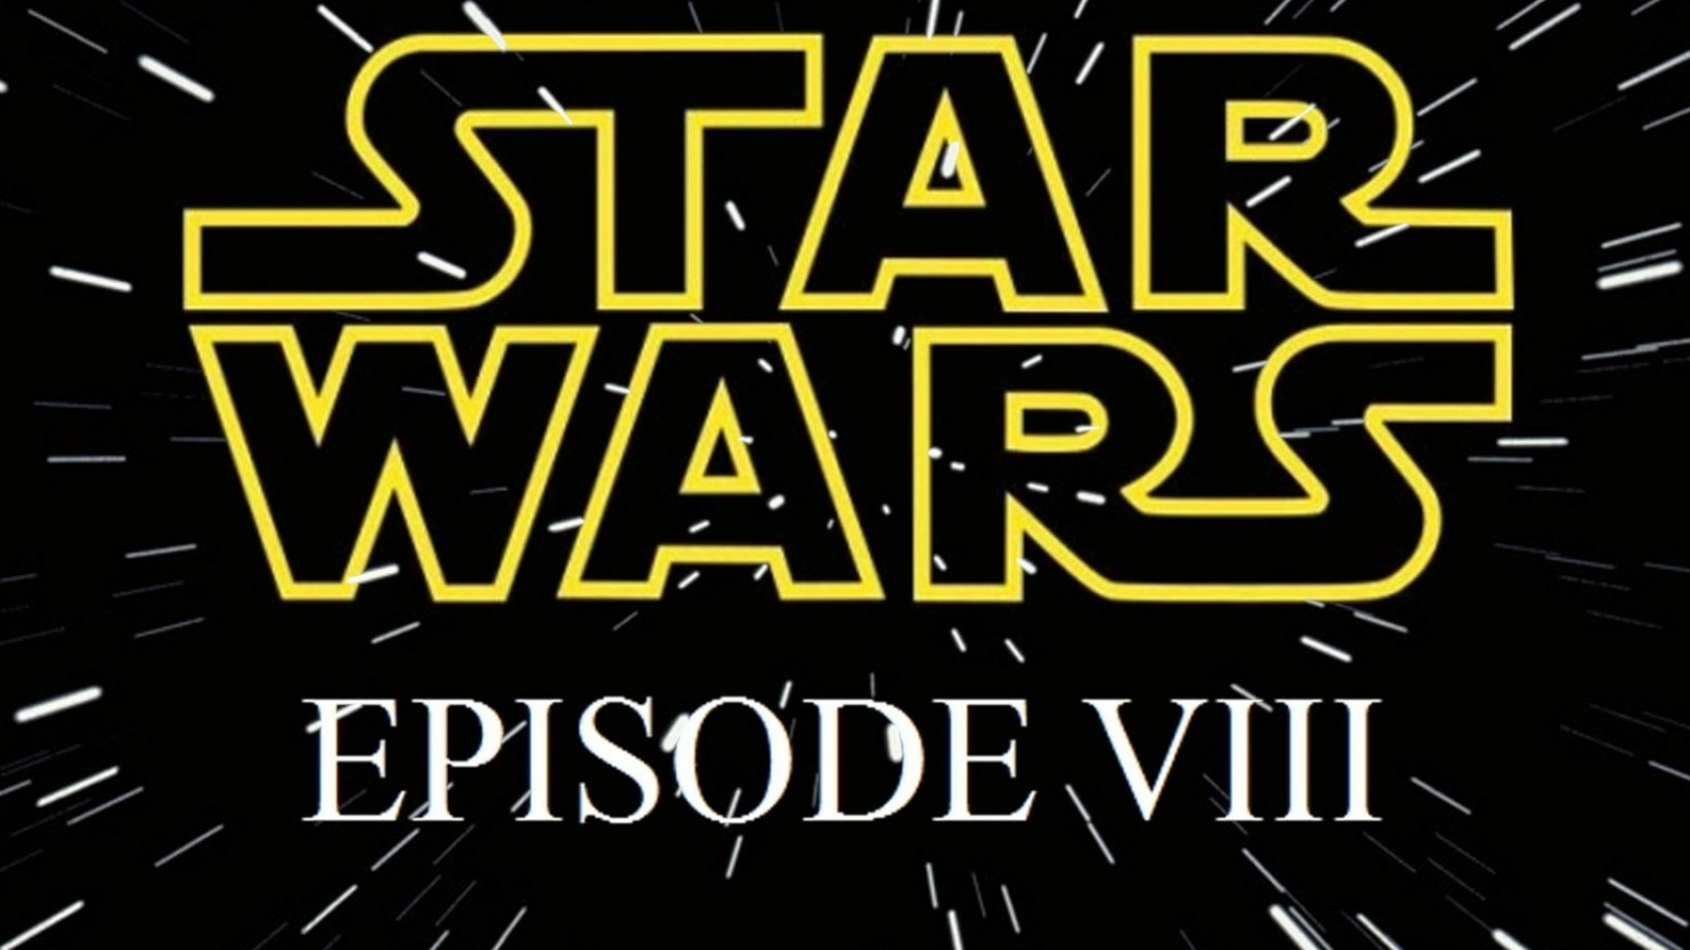 Star Wars Episode VIII Un tournage en Croatie